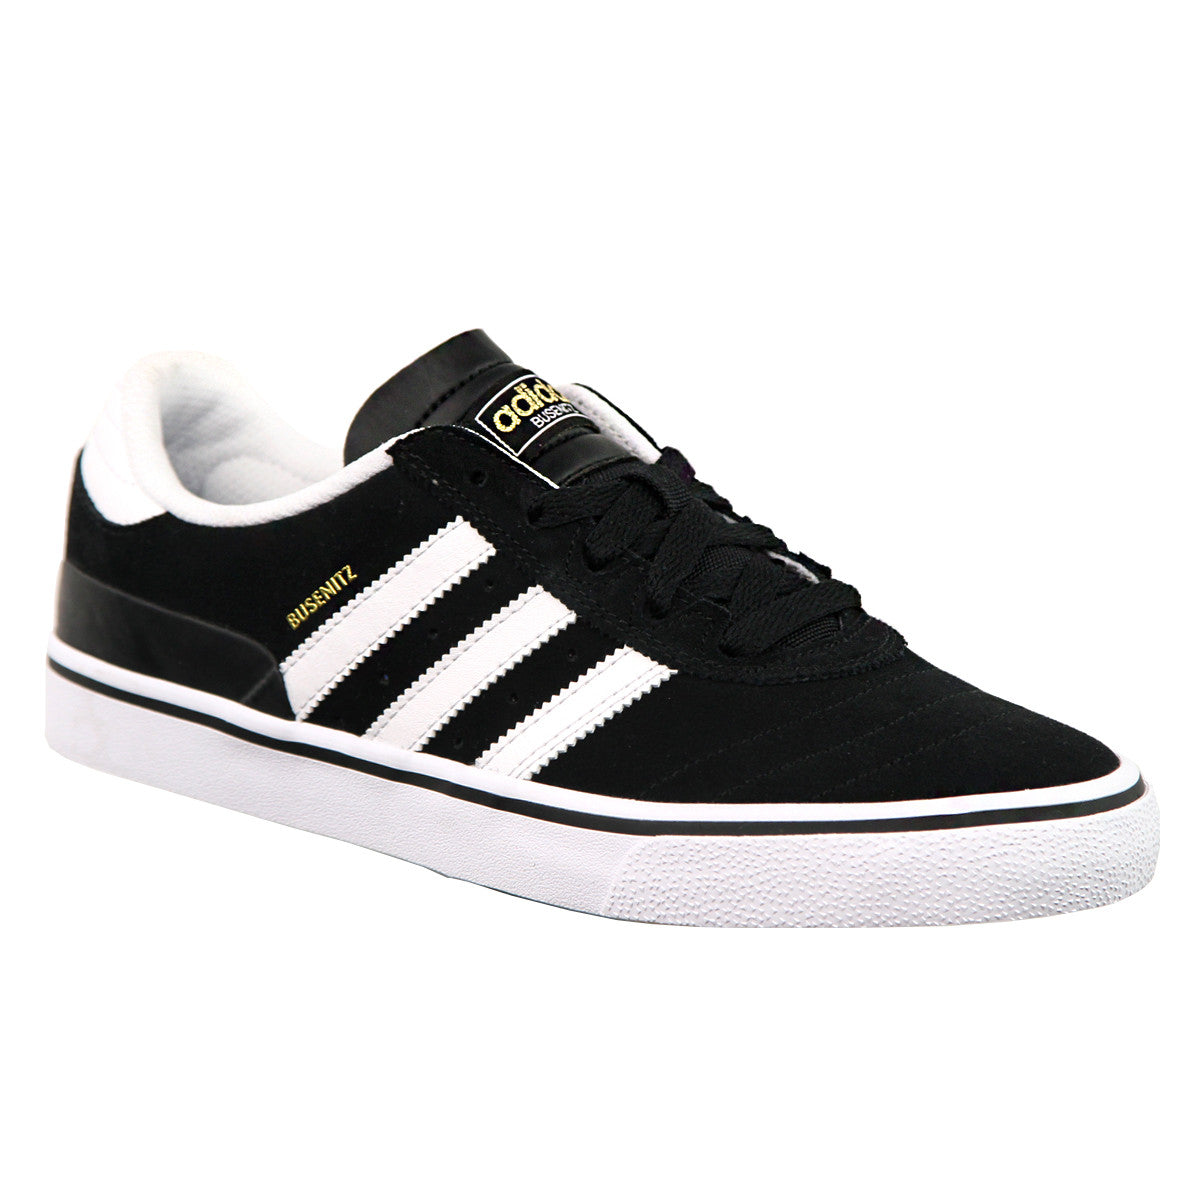 adidas Mens Skate Shoes | Adi Ease Premiere Crystal WhiteCollegiate